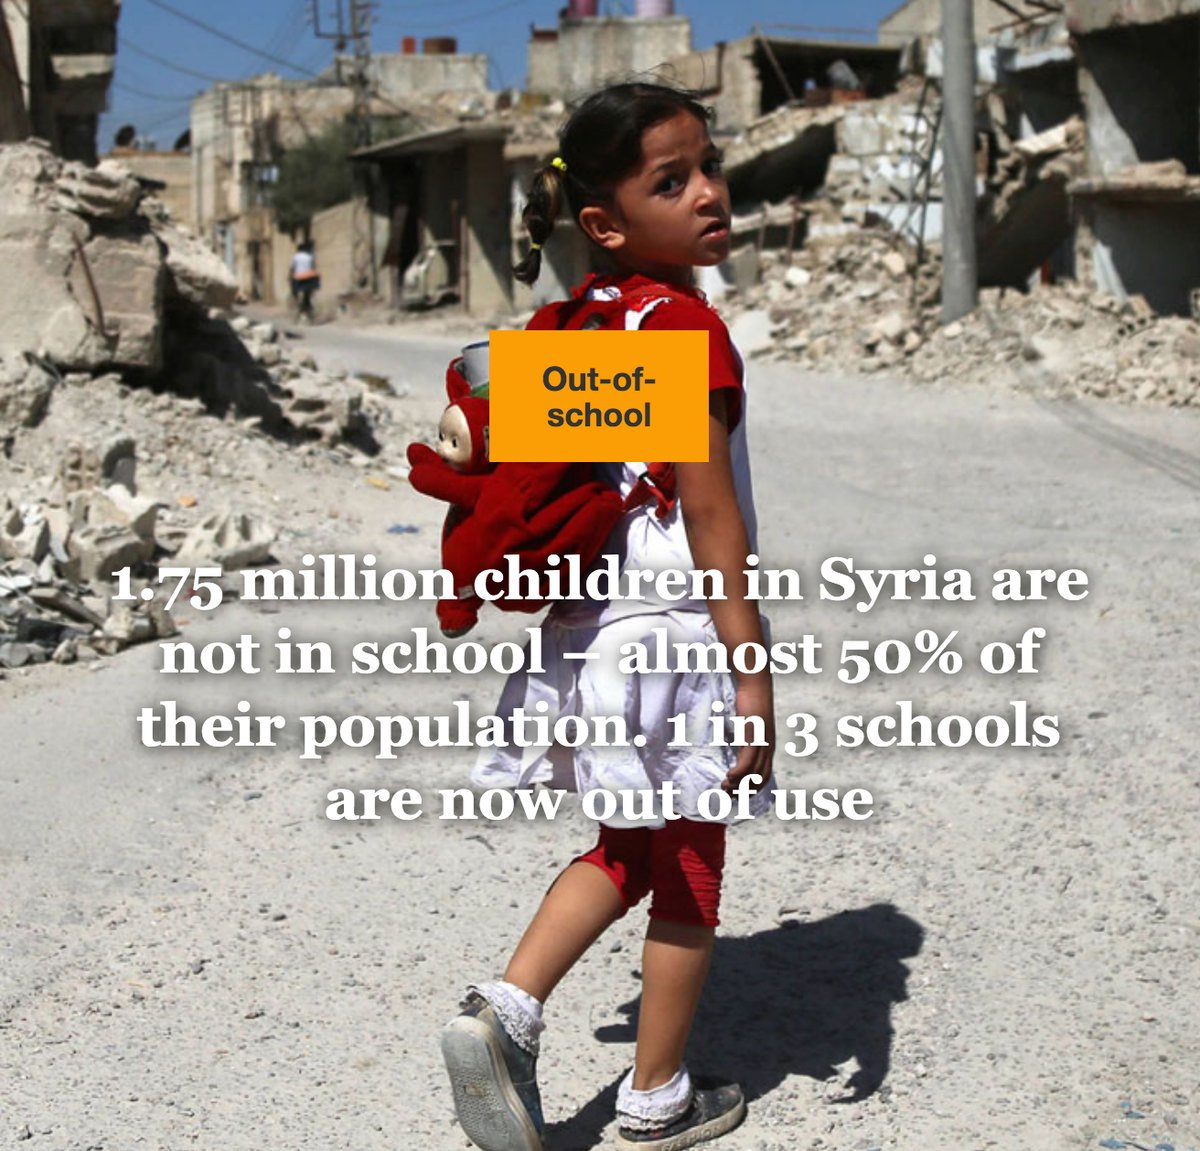 The impact of 6 years of war on Syria's children